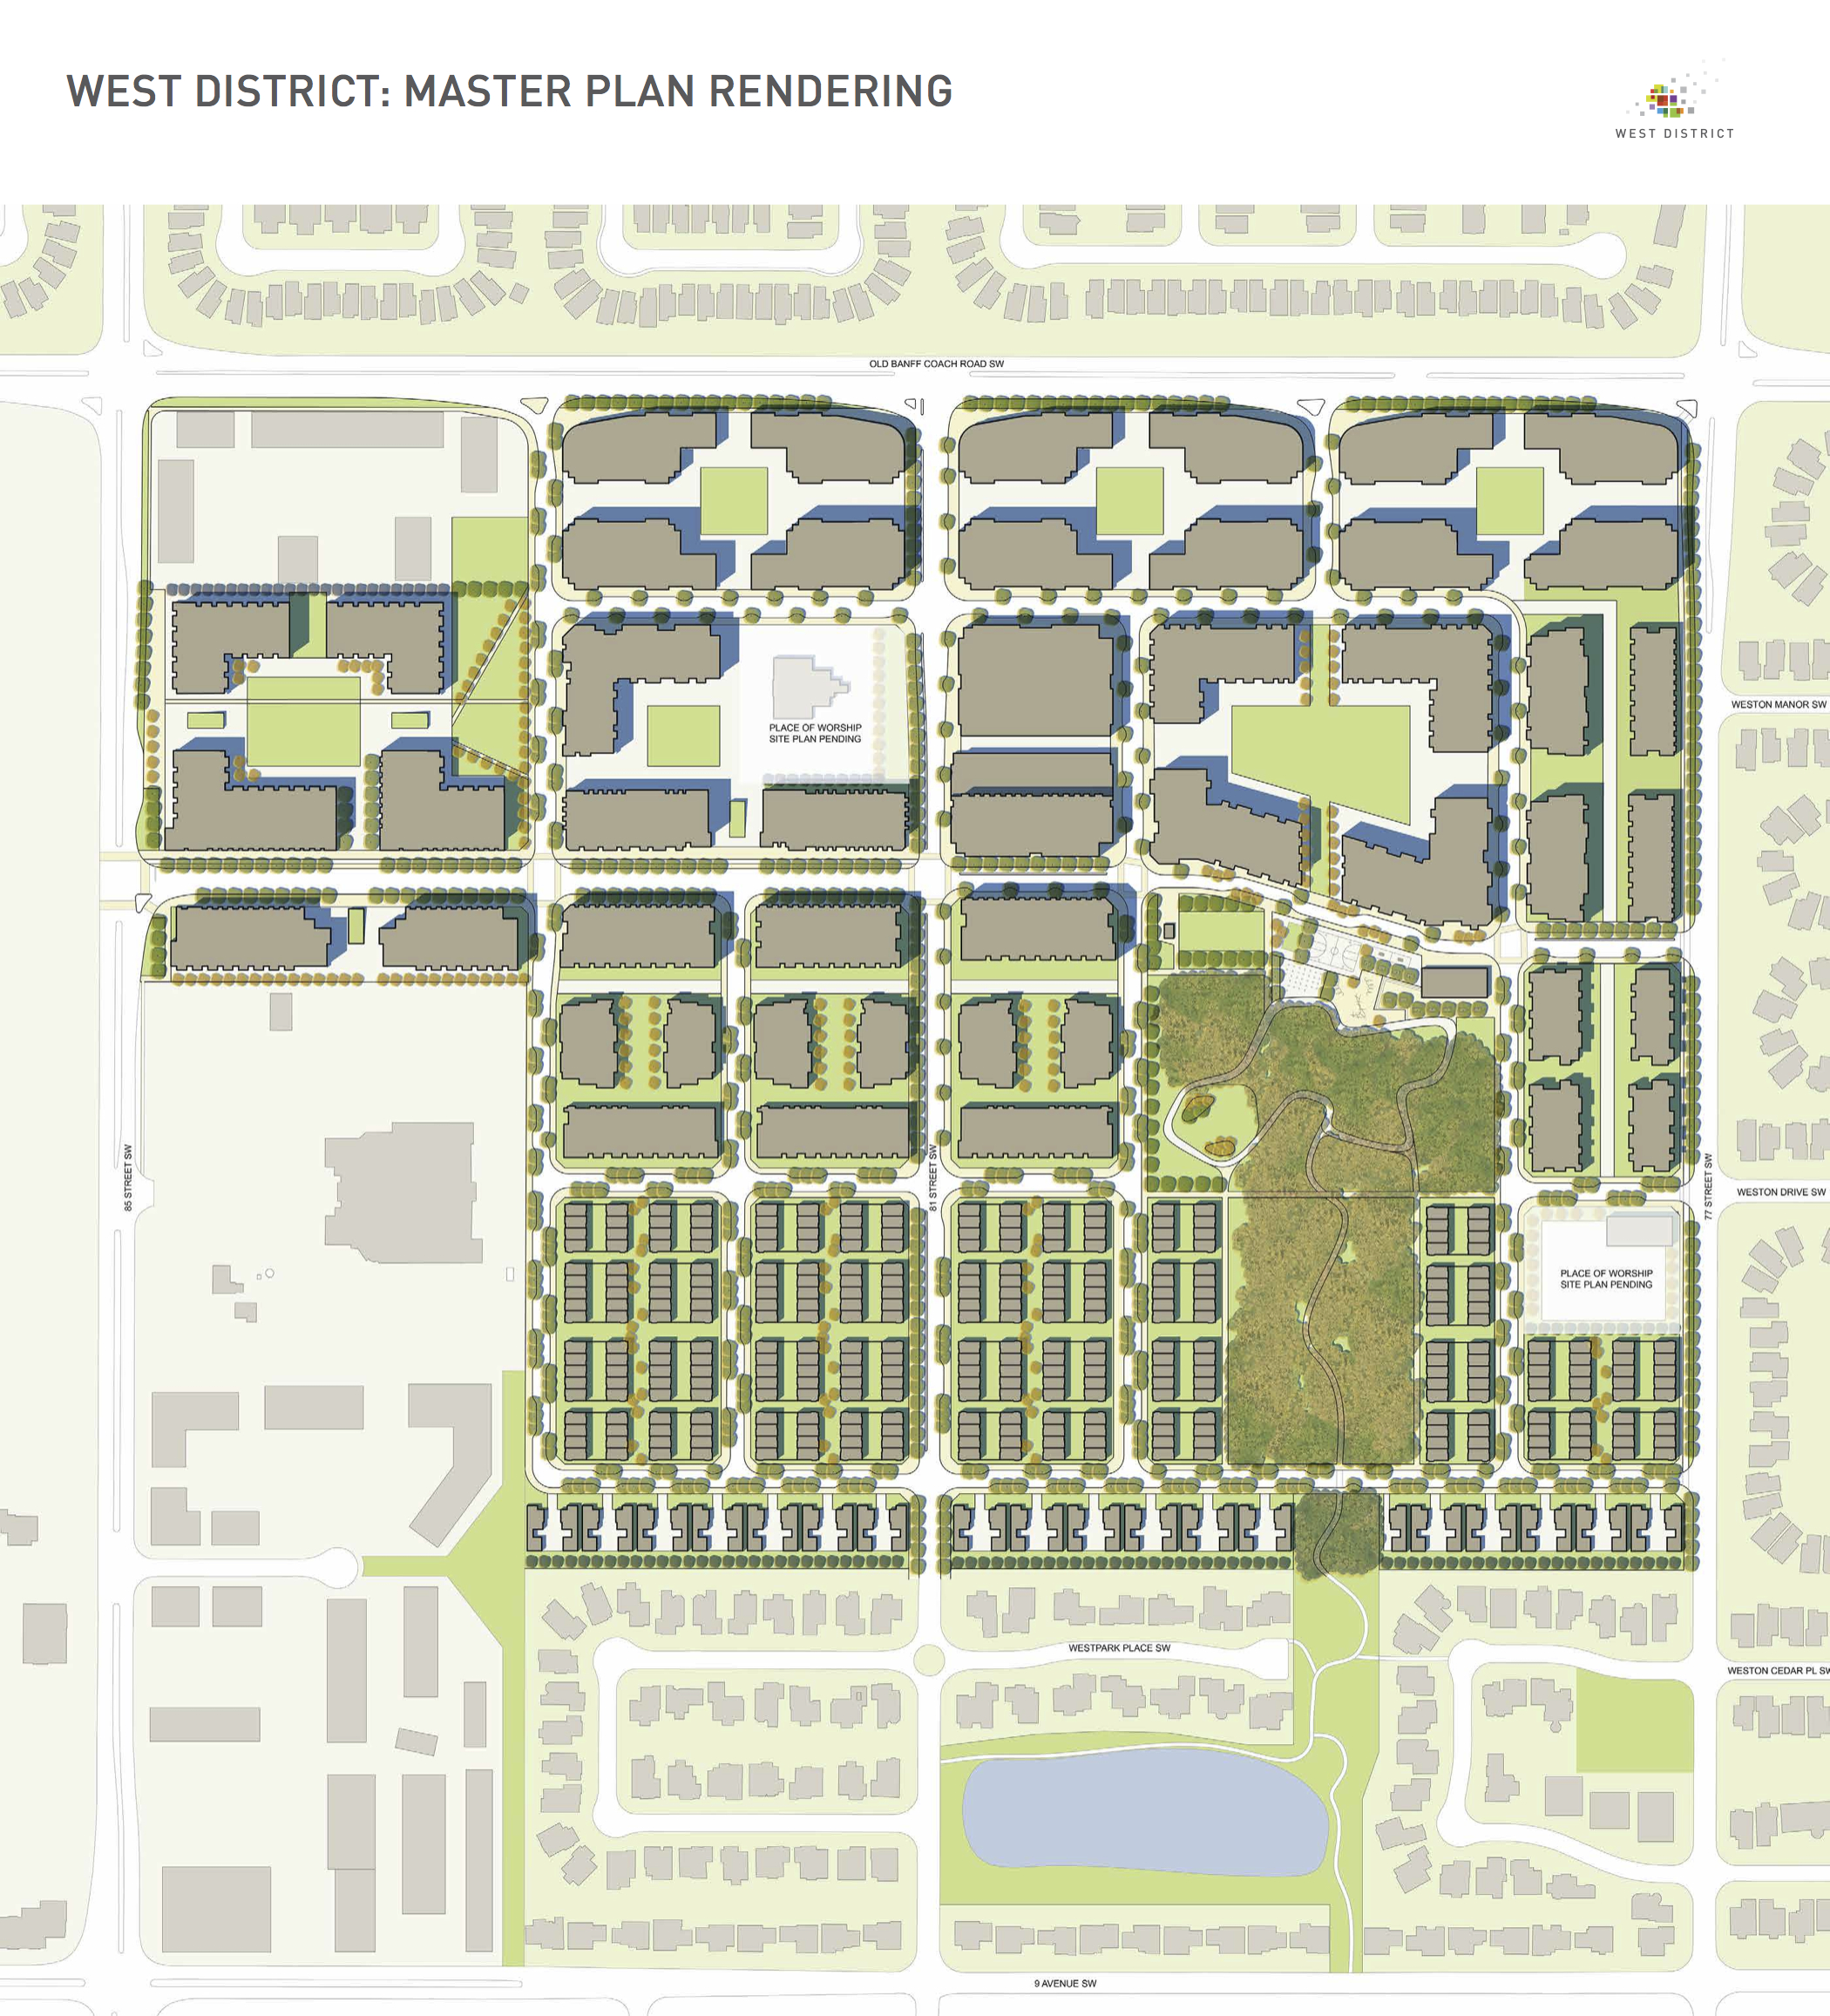 West District calls for low density residential on the south side next to single family homes, with low-rise condos and offices on the north side with a traditional grid street pattern which will server to create the Kensington-like community.